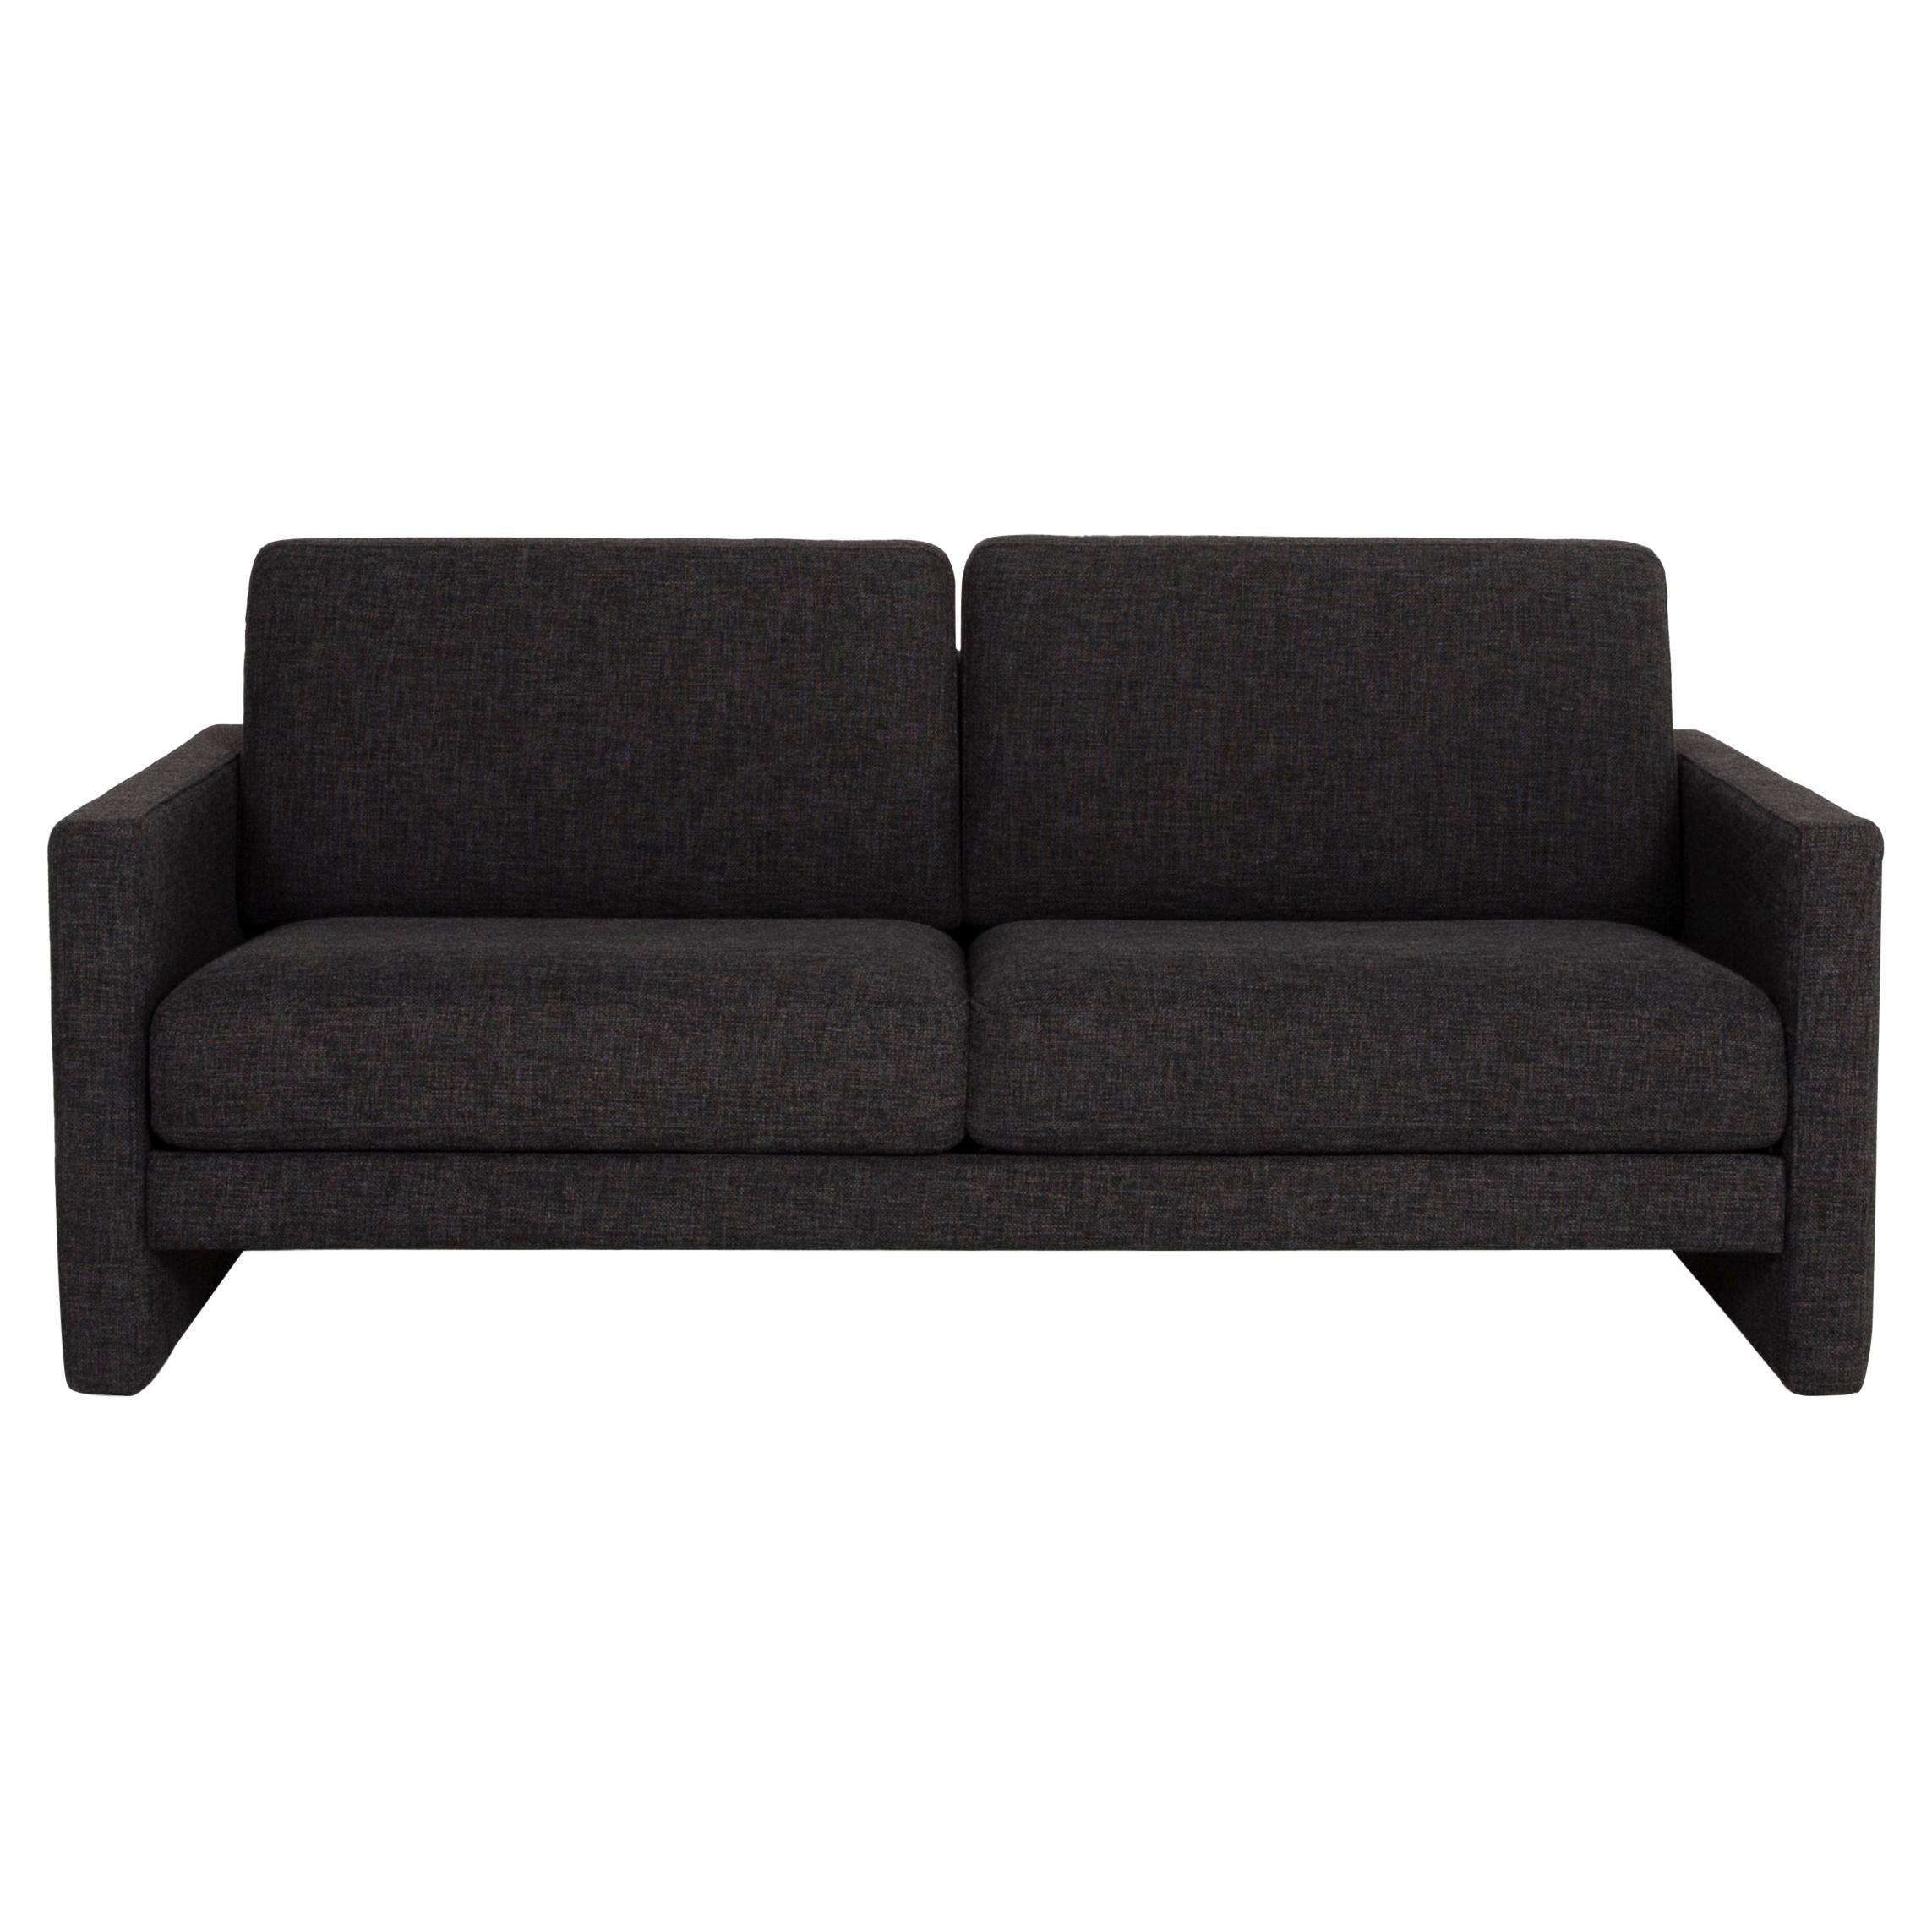 Rolf Benz Two-Seater Sofa Fabric Gray Anthracite